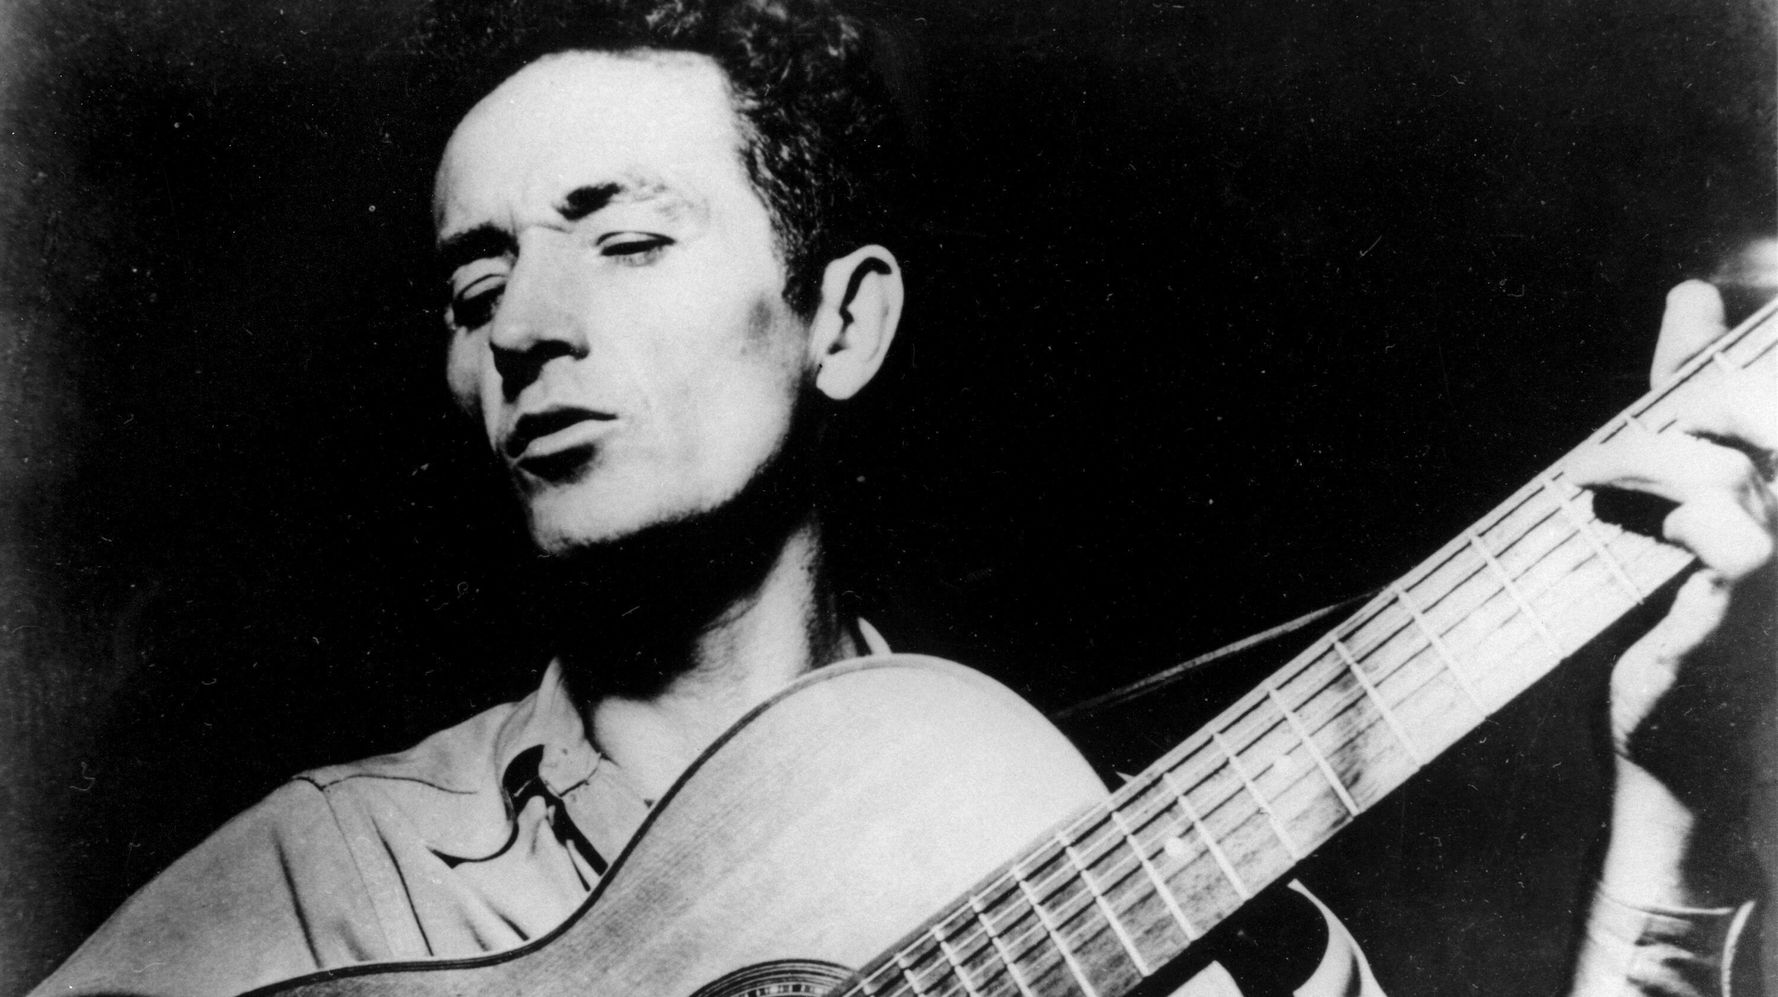 'All You Fascists Bound To Lose': Ex-Ethics Boss Inspires Twitter Fans With Woody Guthrie Song